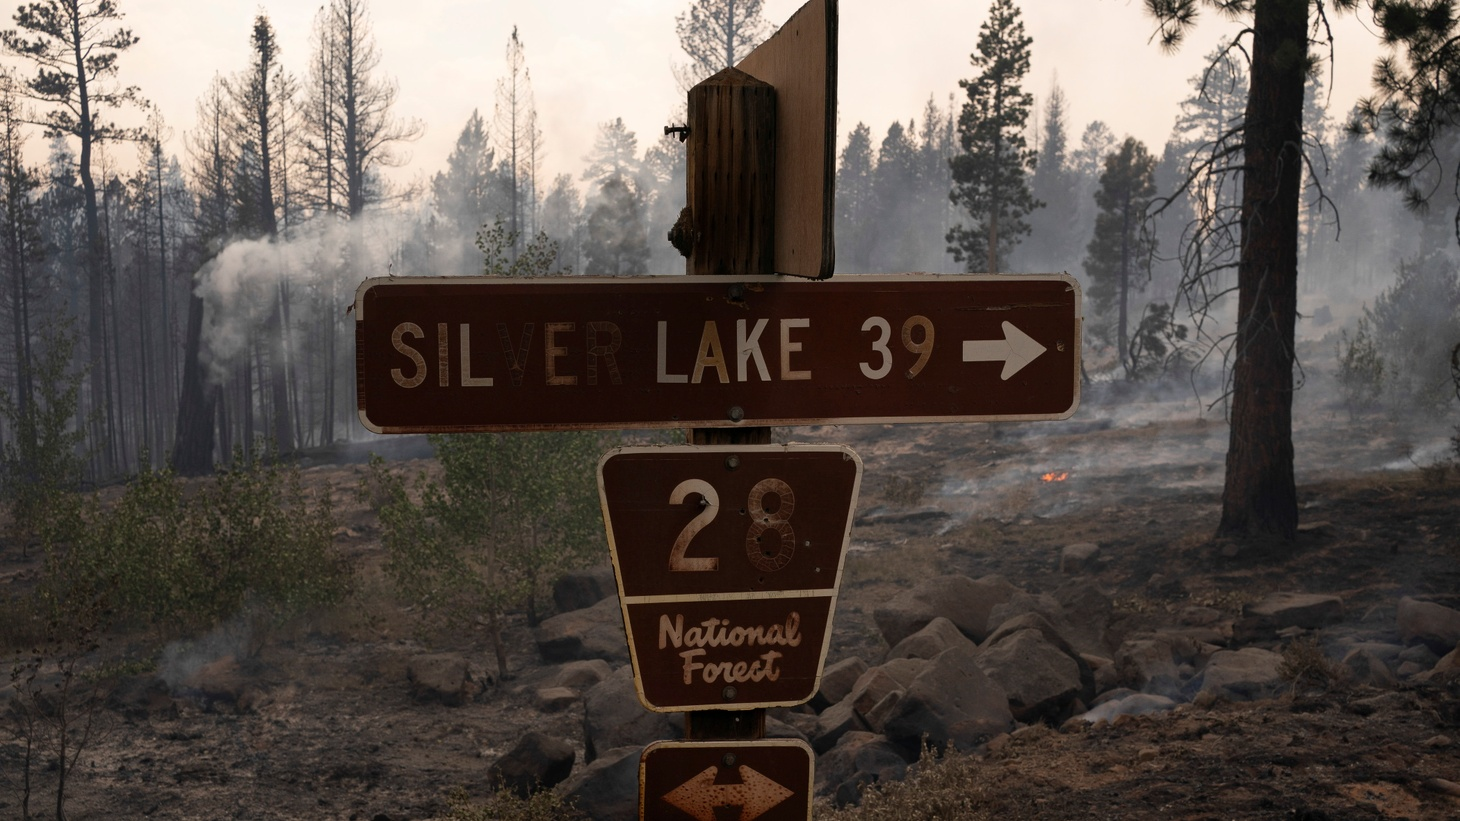 A sign burned by wildfire is seen as the Bootleg Fire burns through vegetation near Paisley, Oregon, U.S., July 20, 2021.